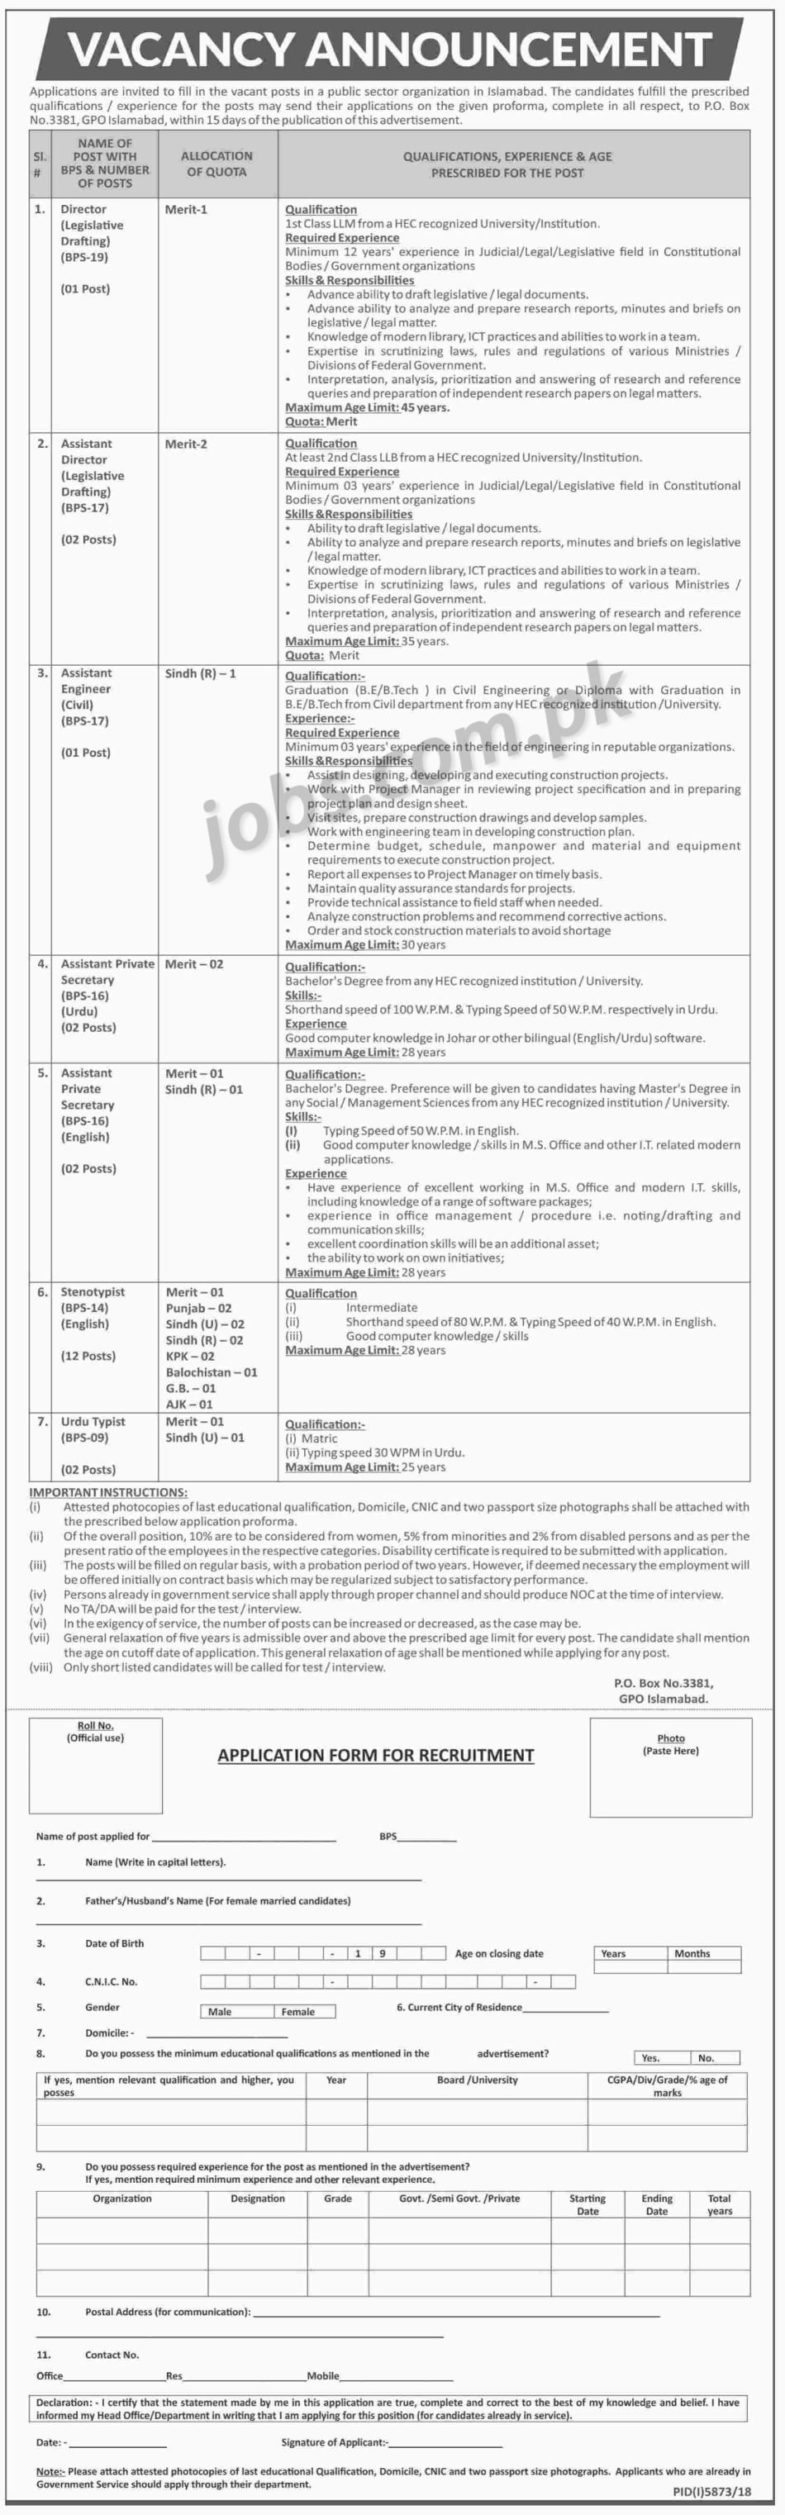 PO Box 3381 Federal Govt Organization Jobs 2019 for 22+ Urdu Typists, Stenotypists, Engineer, Assistant PS & Other Posts